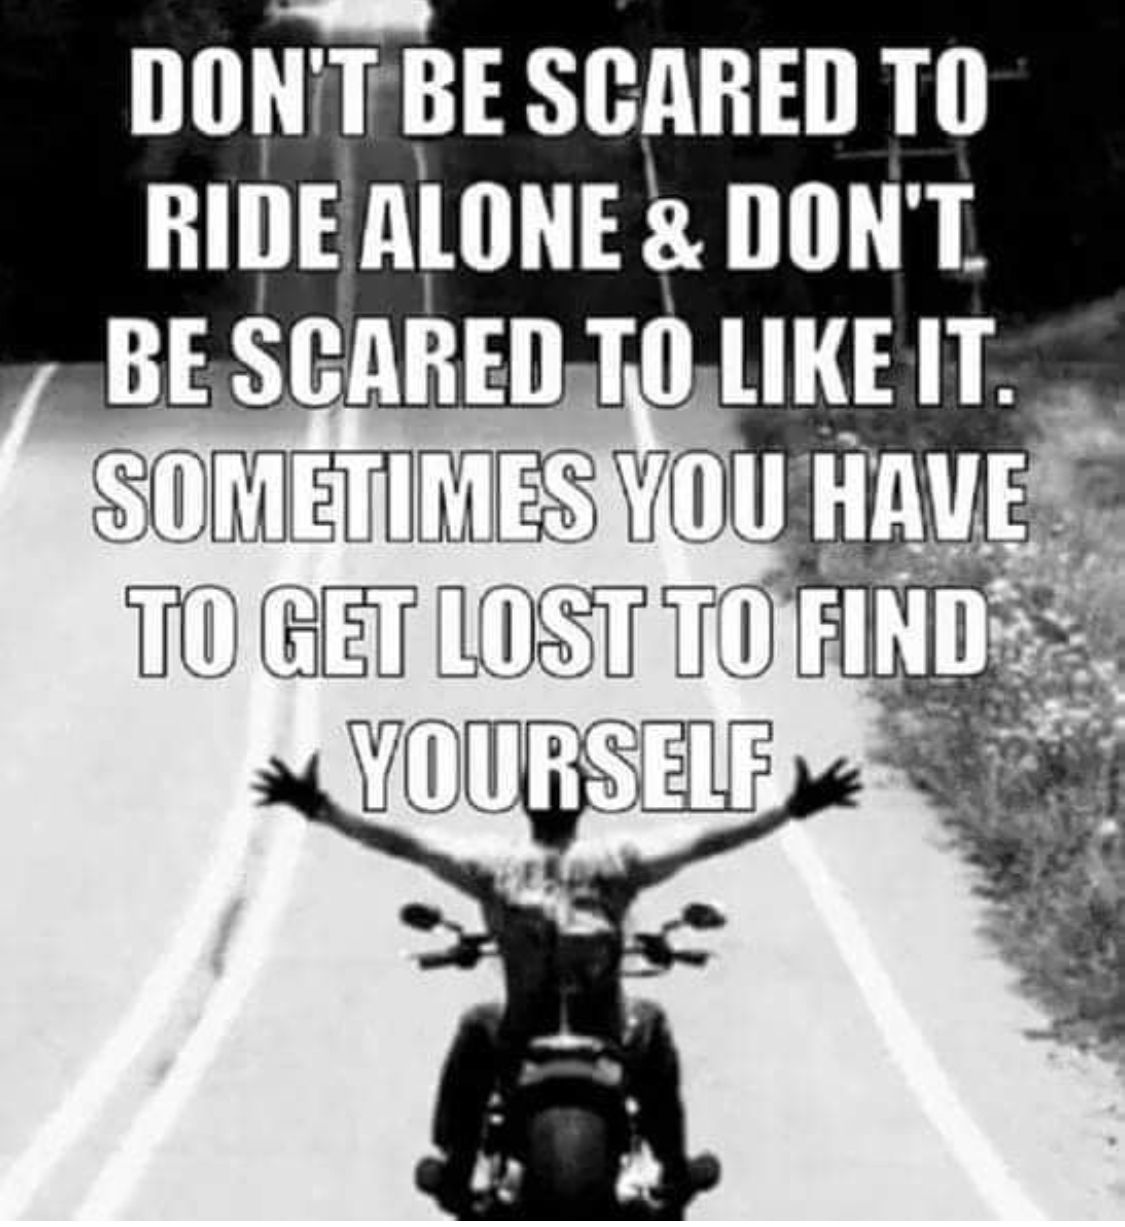 Pin By C Donaldson On Random Thoughts Bike Quotes Riding Quotes Biker Quotes